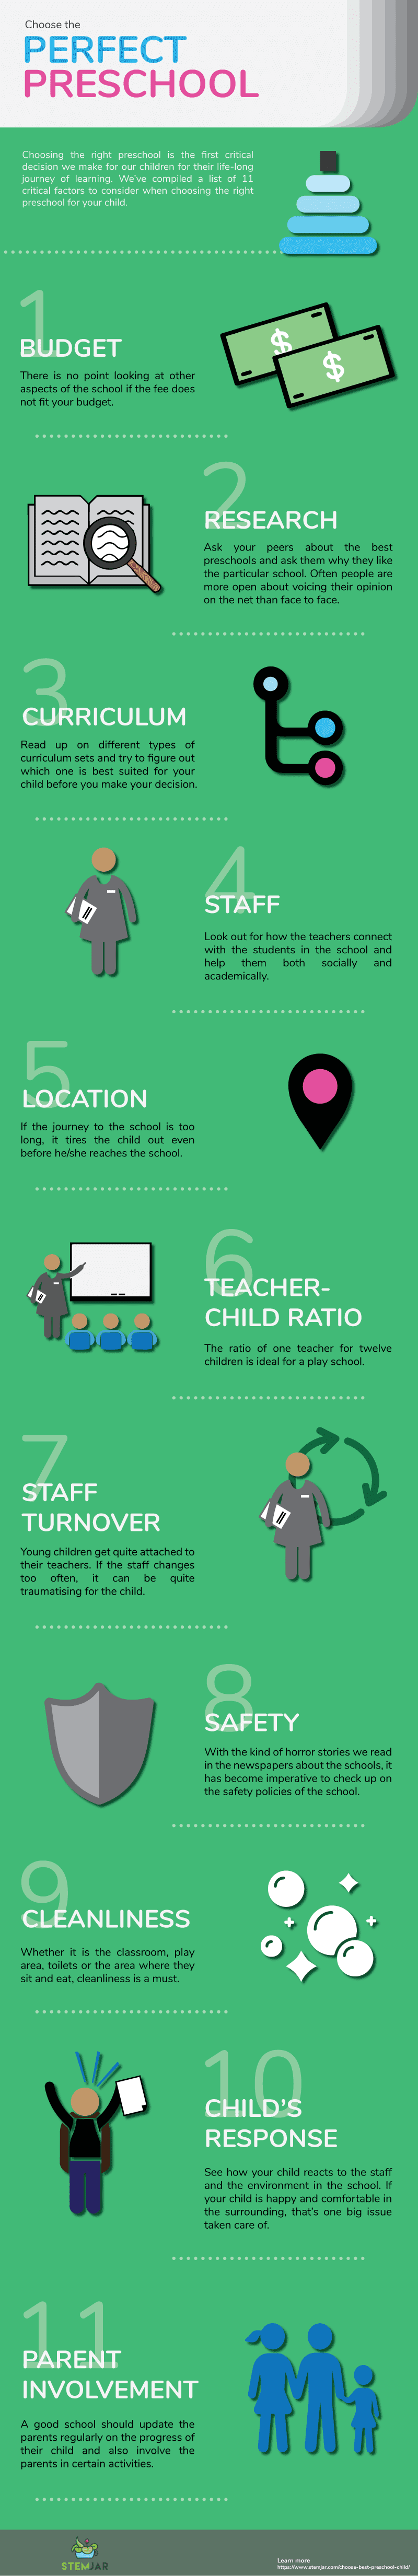 how to choose a preschool for your child infographic